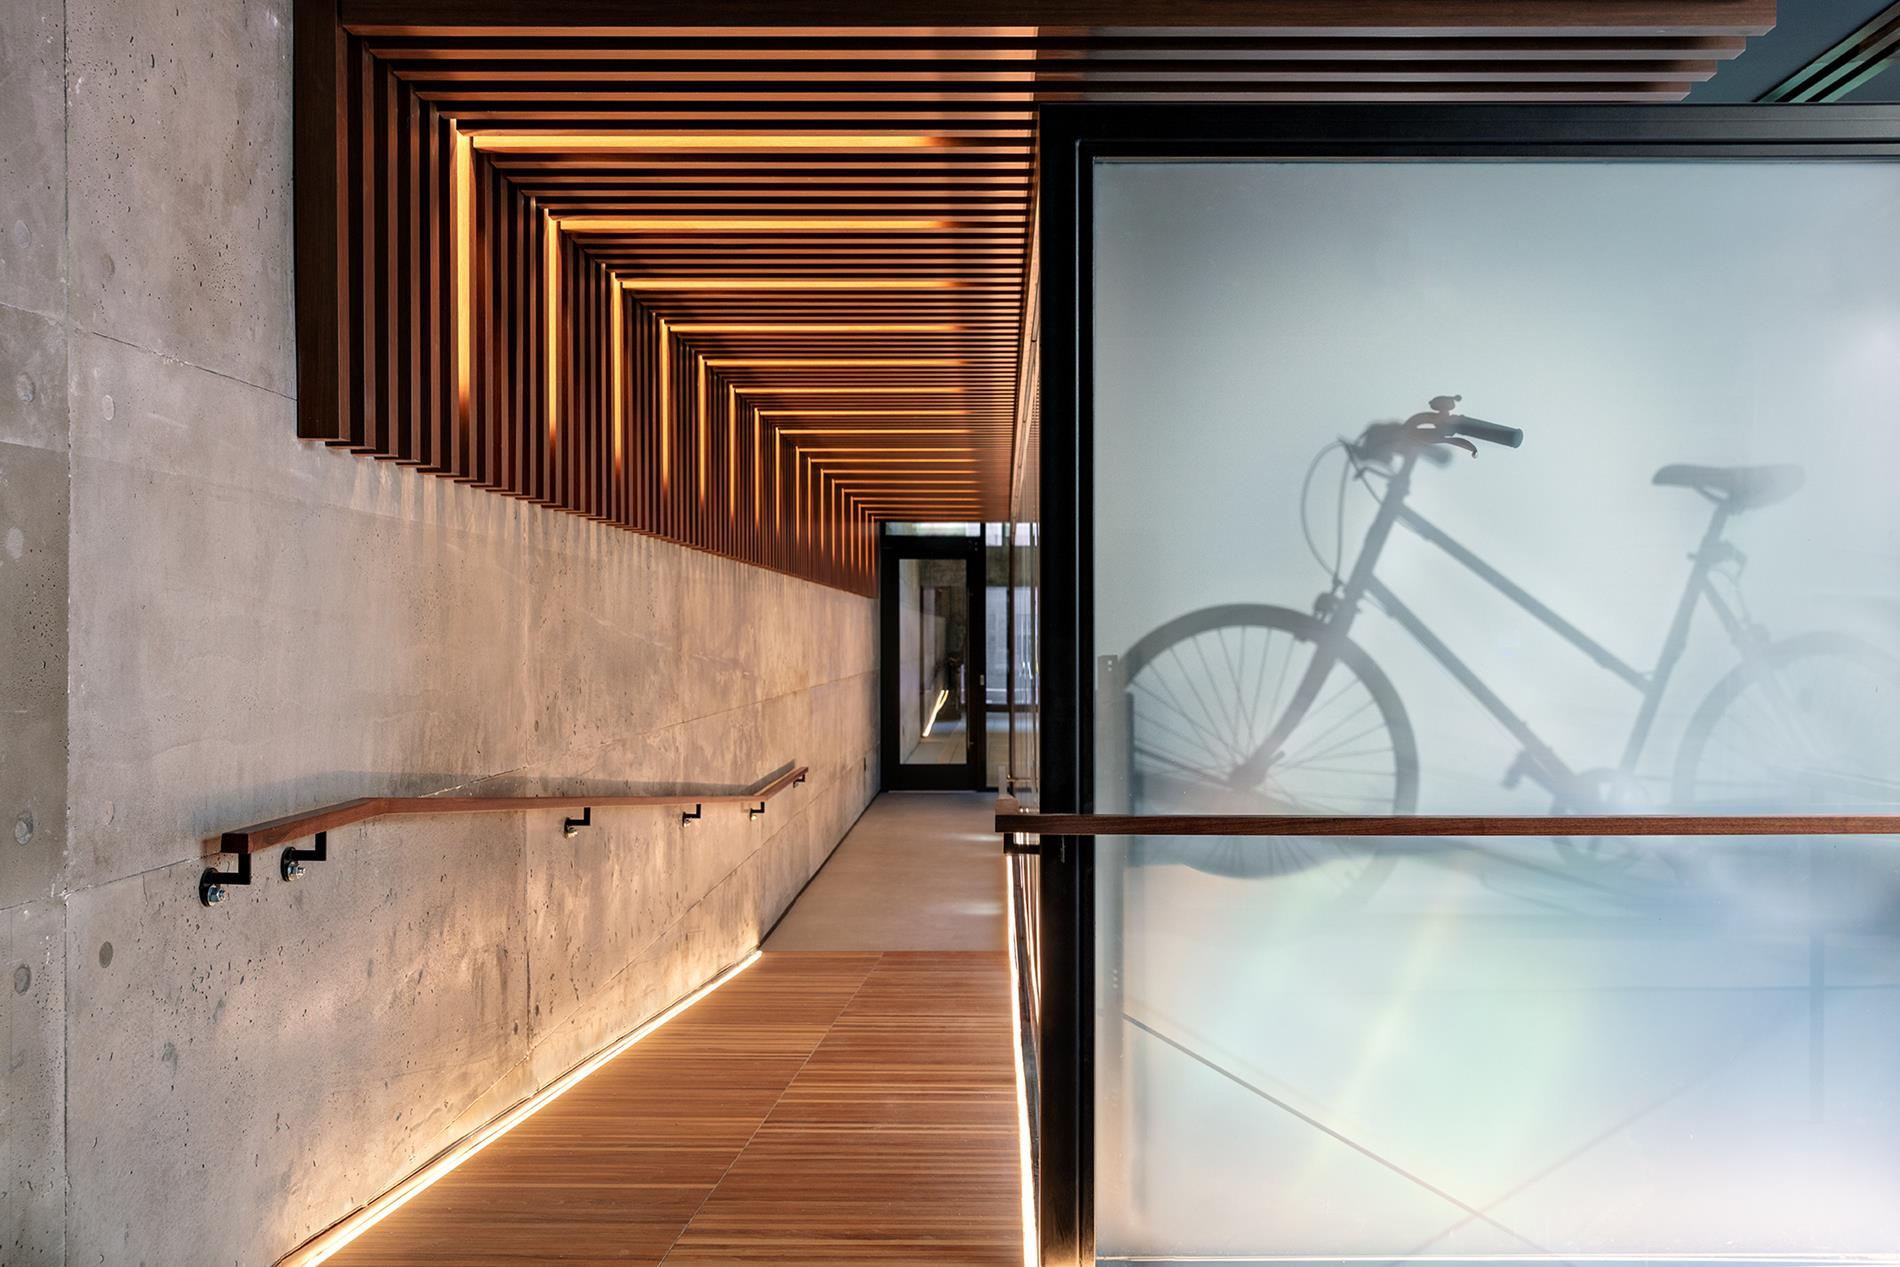 bicycle storage NYC in a luxury building